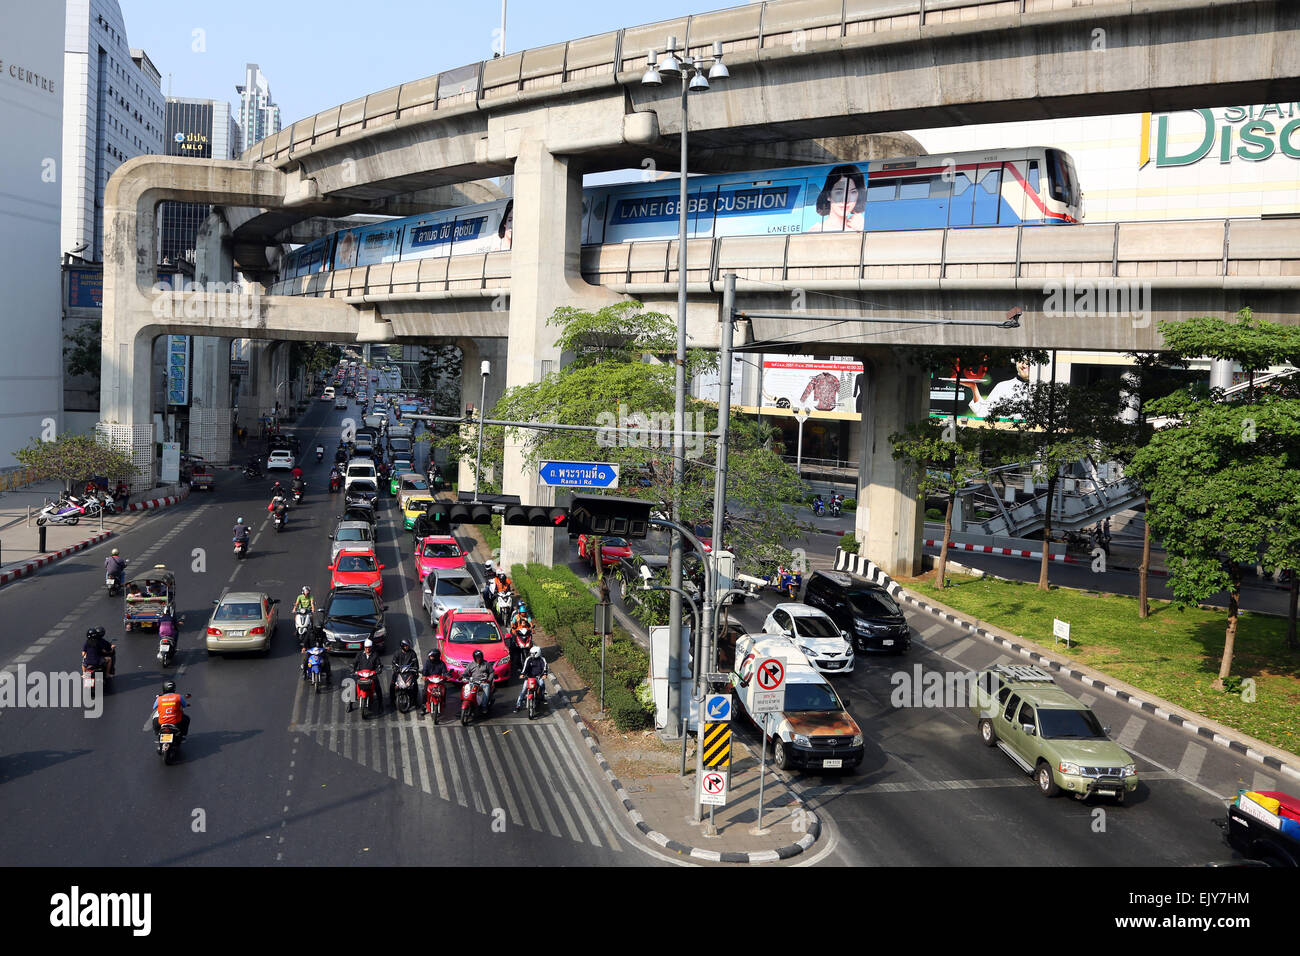 Street scene showing rush hour traffic and BTS train on tracks coming into Siam BTS station in Bangkok, Thailand - Stock Image